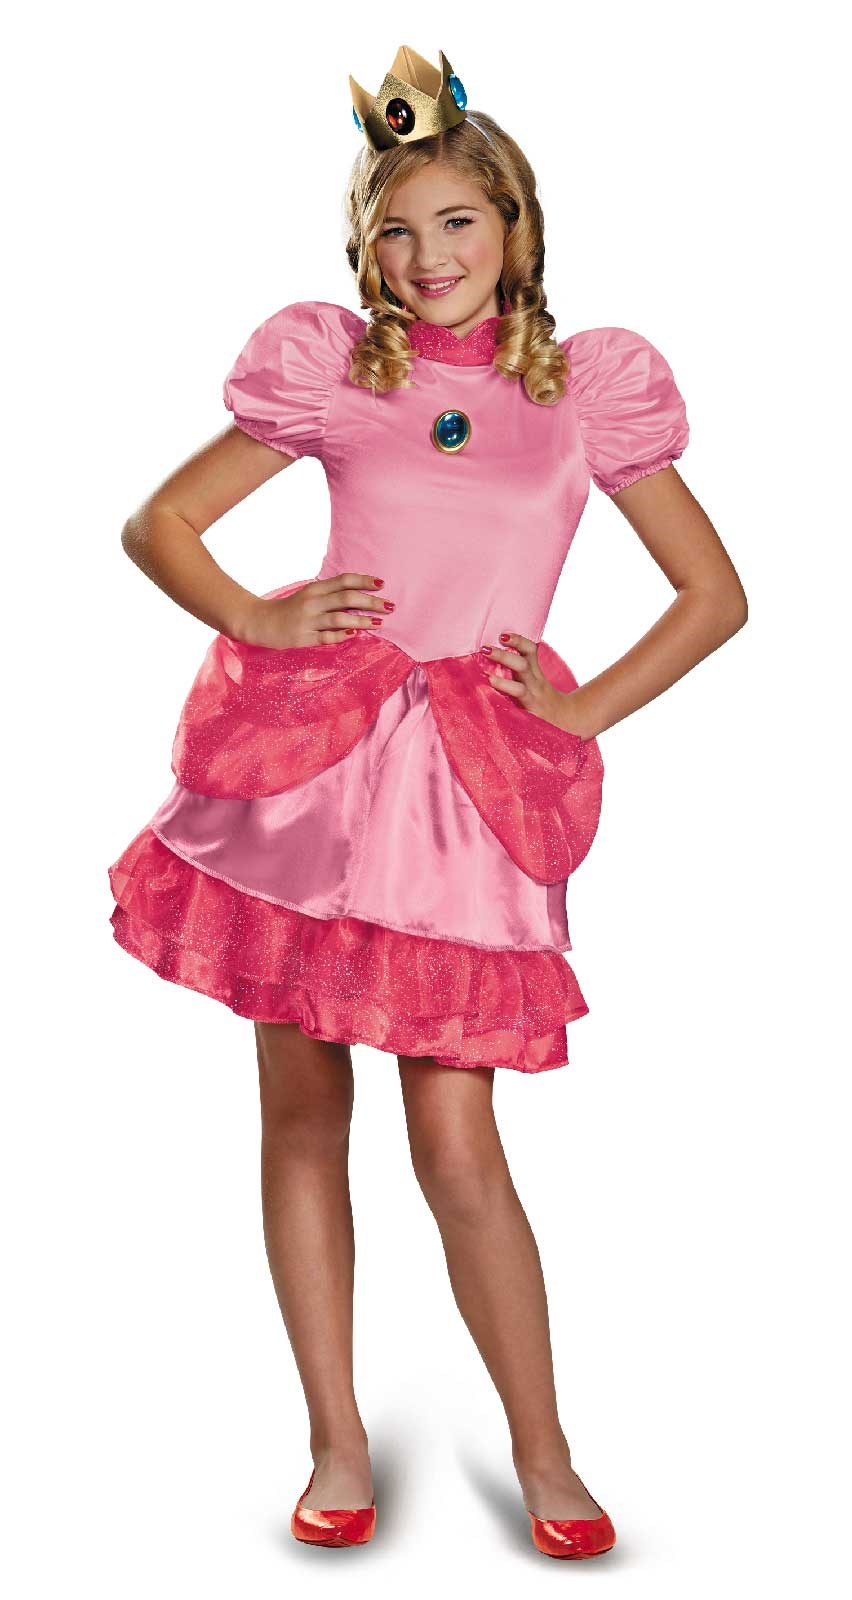 Super Mario Brothers Princess Peach Tween Girl Costume Medium (7-8)